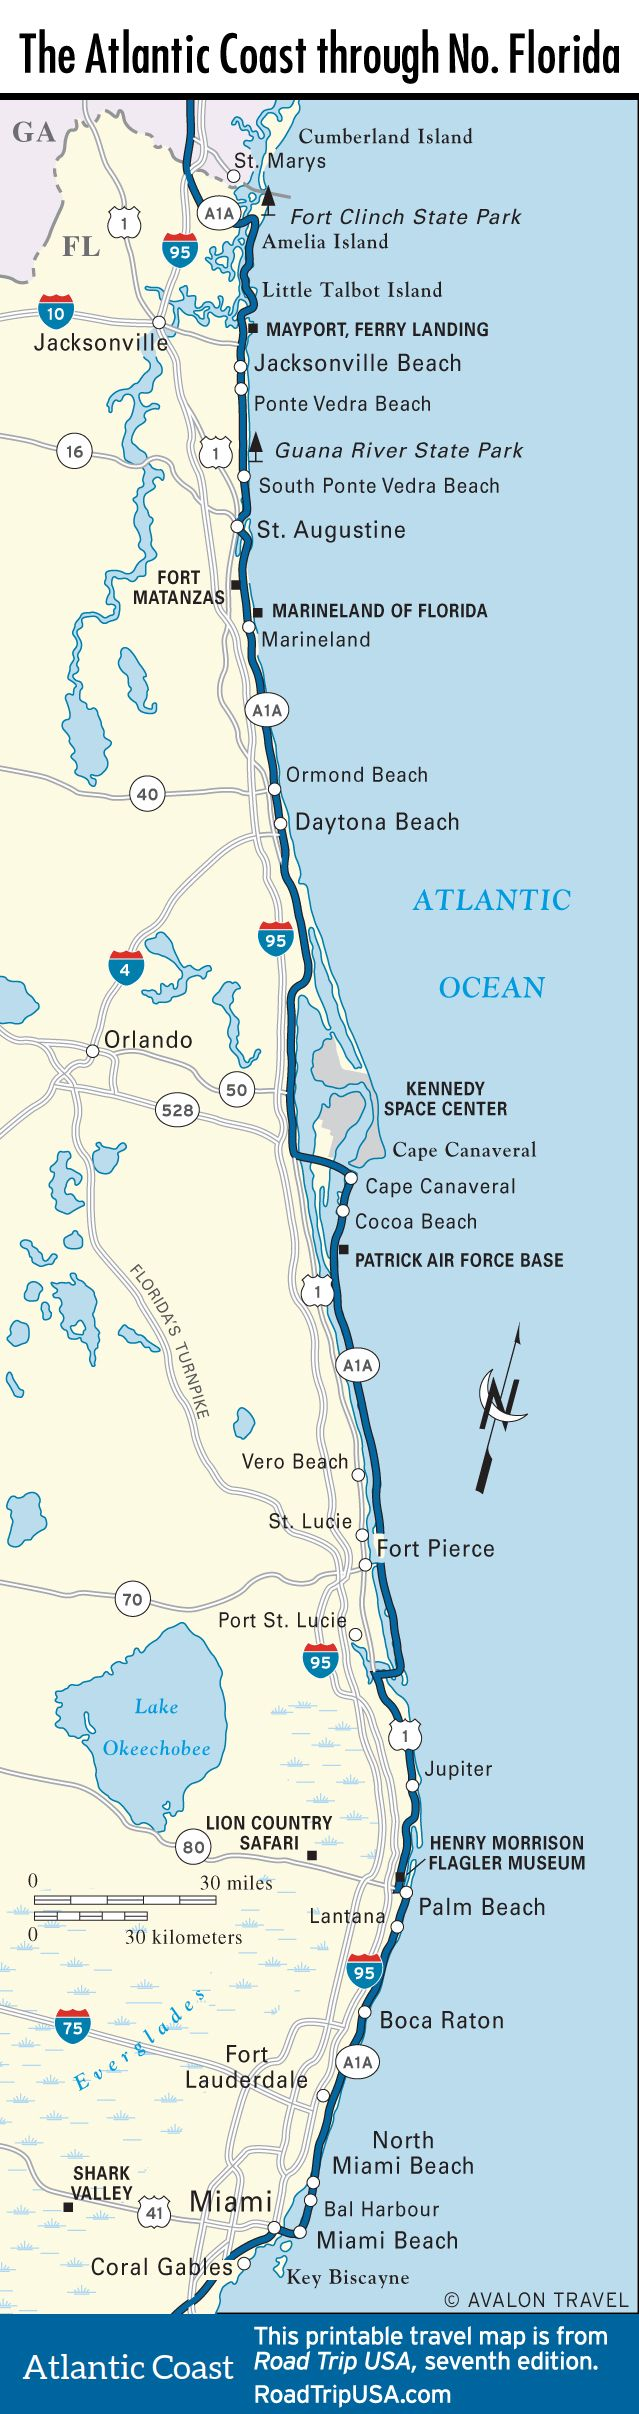 Atlantic Coast Florida Map.Map Of The Atlantic Coast Through Northern Florida Florida A1a